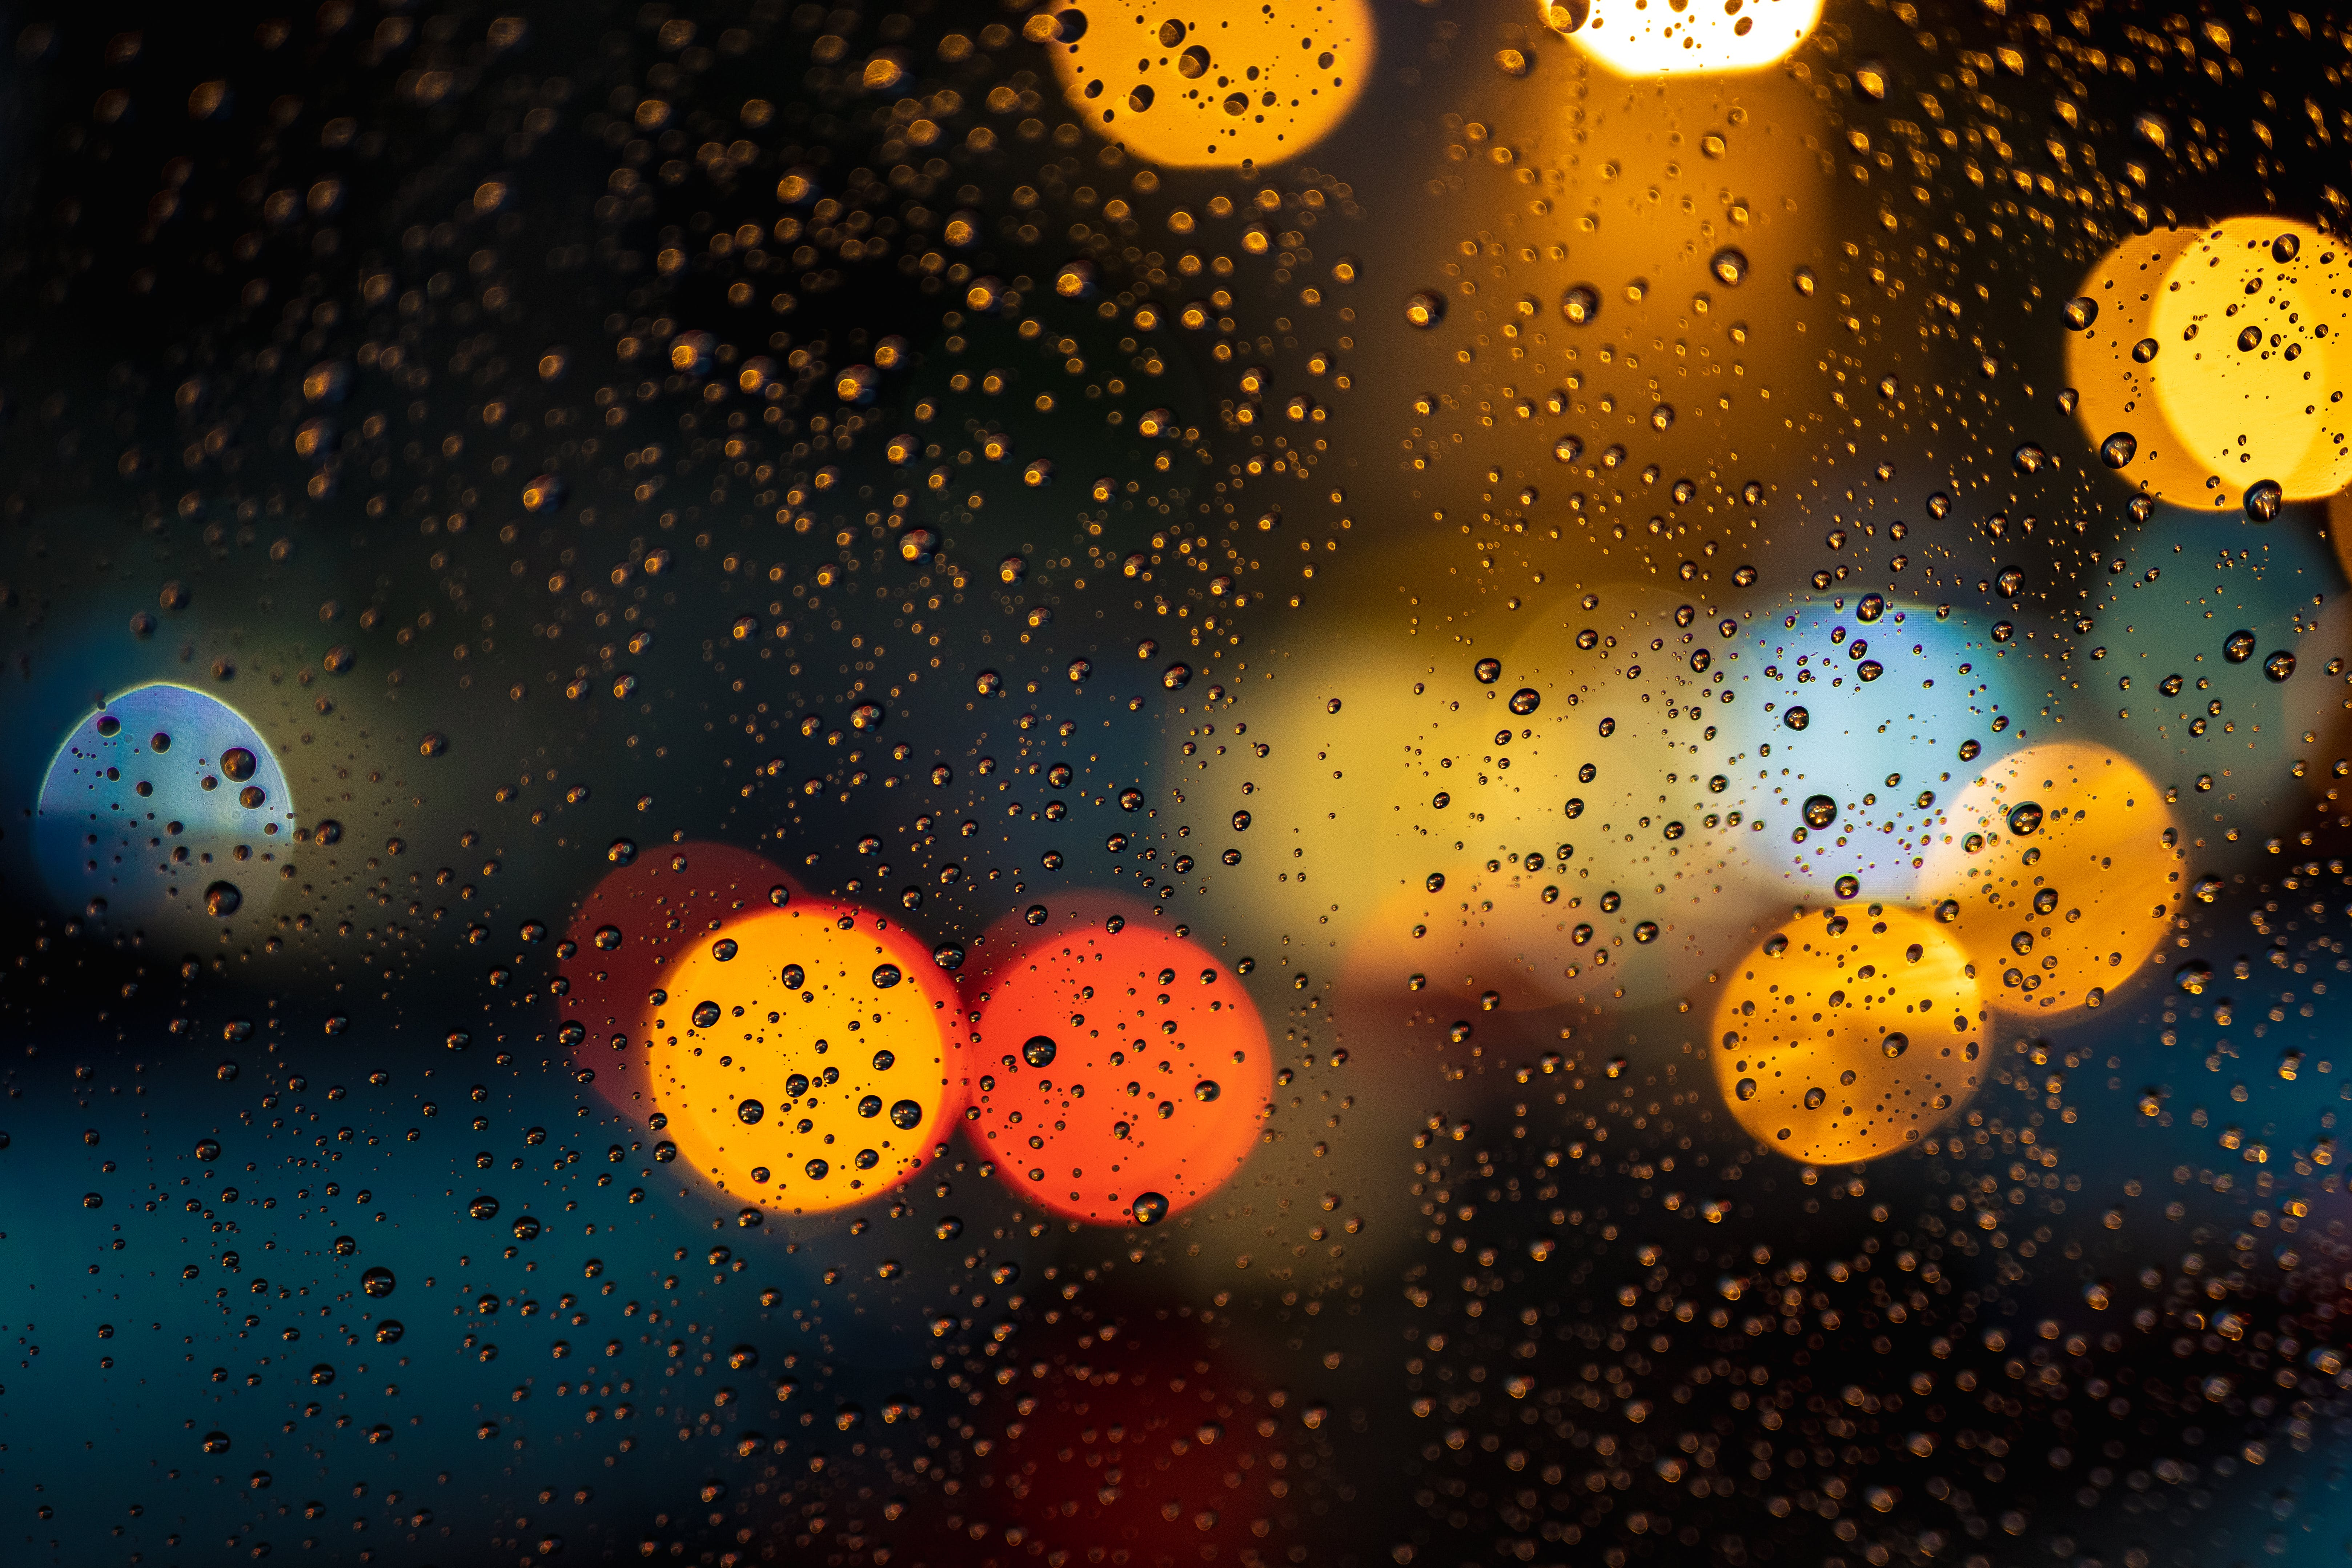 Free stock photo of blurred background, close-up, colors, dark